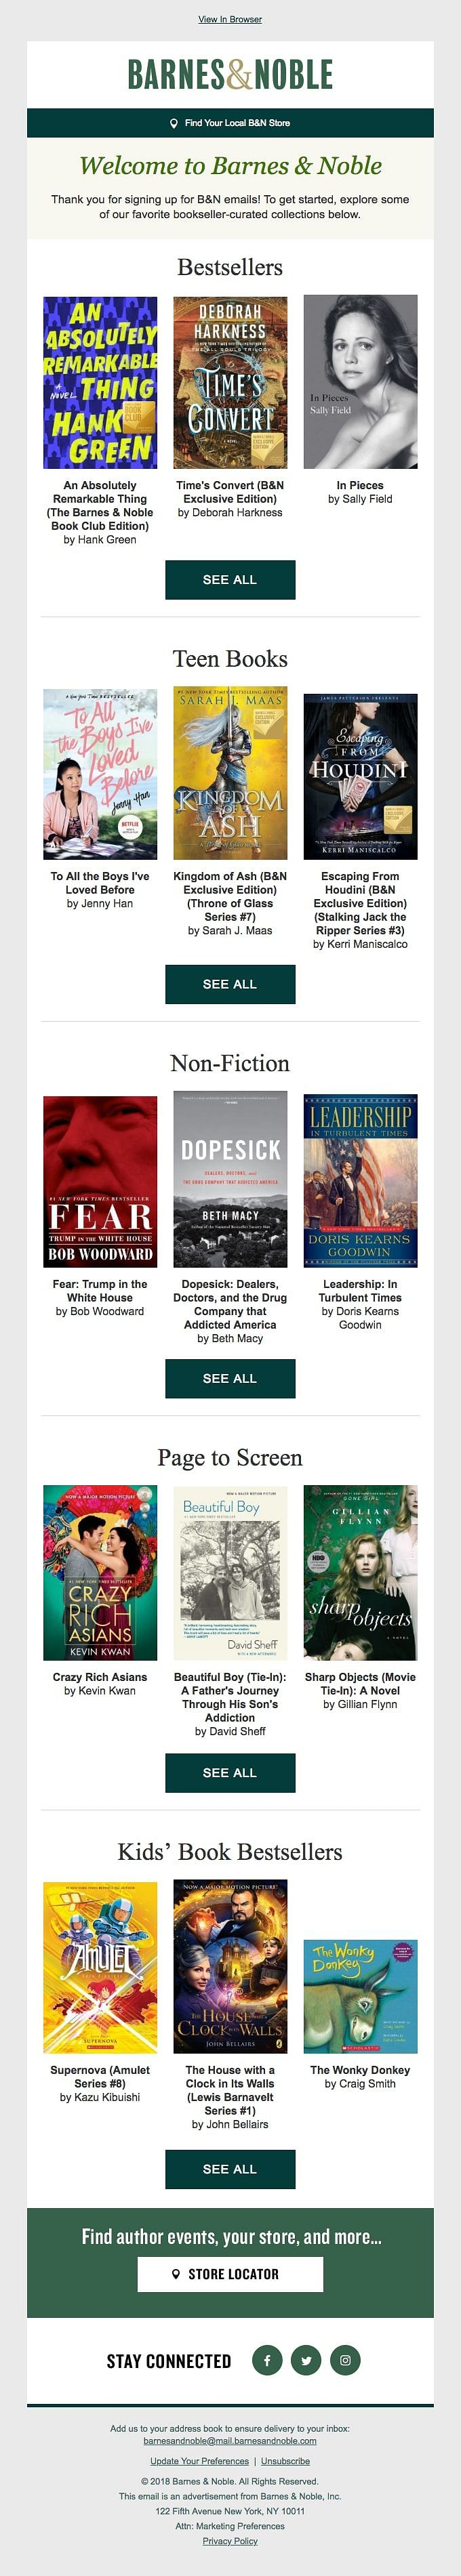 Barnes & Noble getting started welcome email